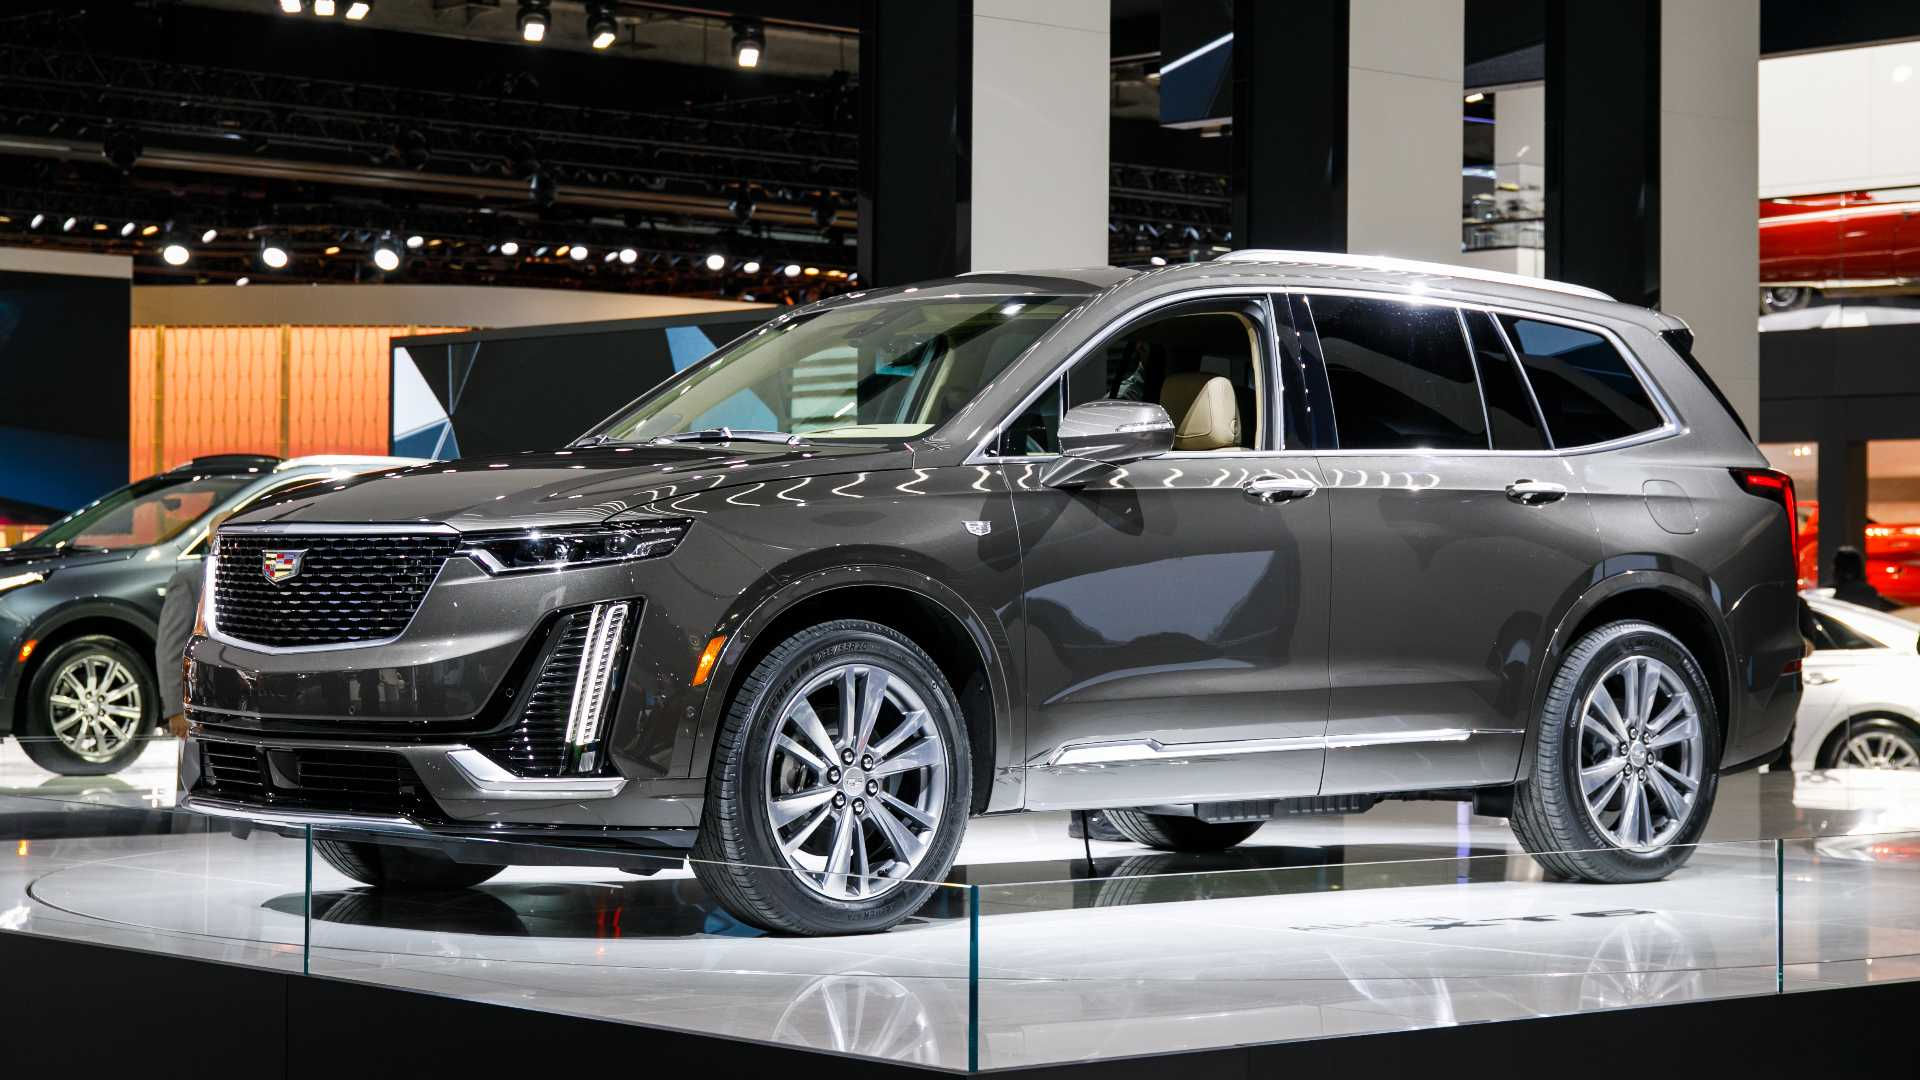 All You Need To Know About 2020 Cadillac XT6 >> 2020 Cadillac Xt6 Starts At 53 590 Sport Trim At 58 090